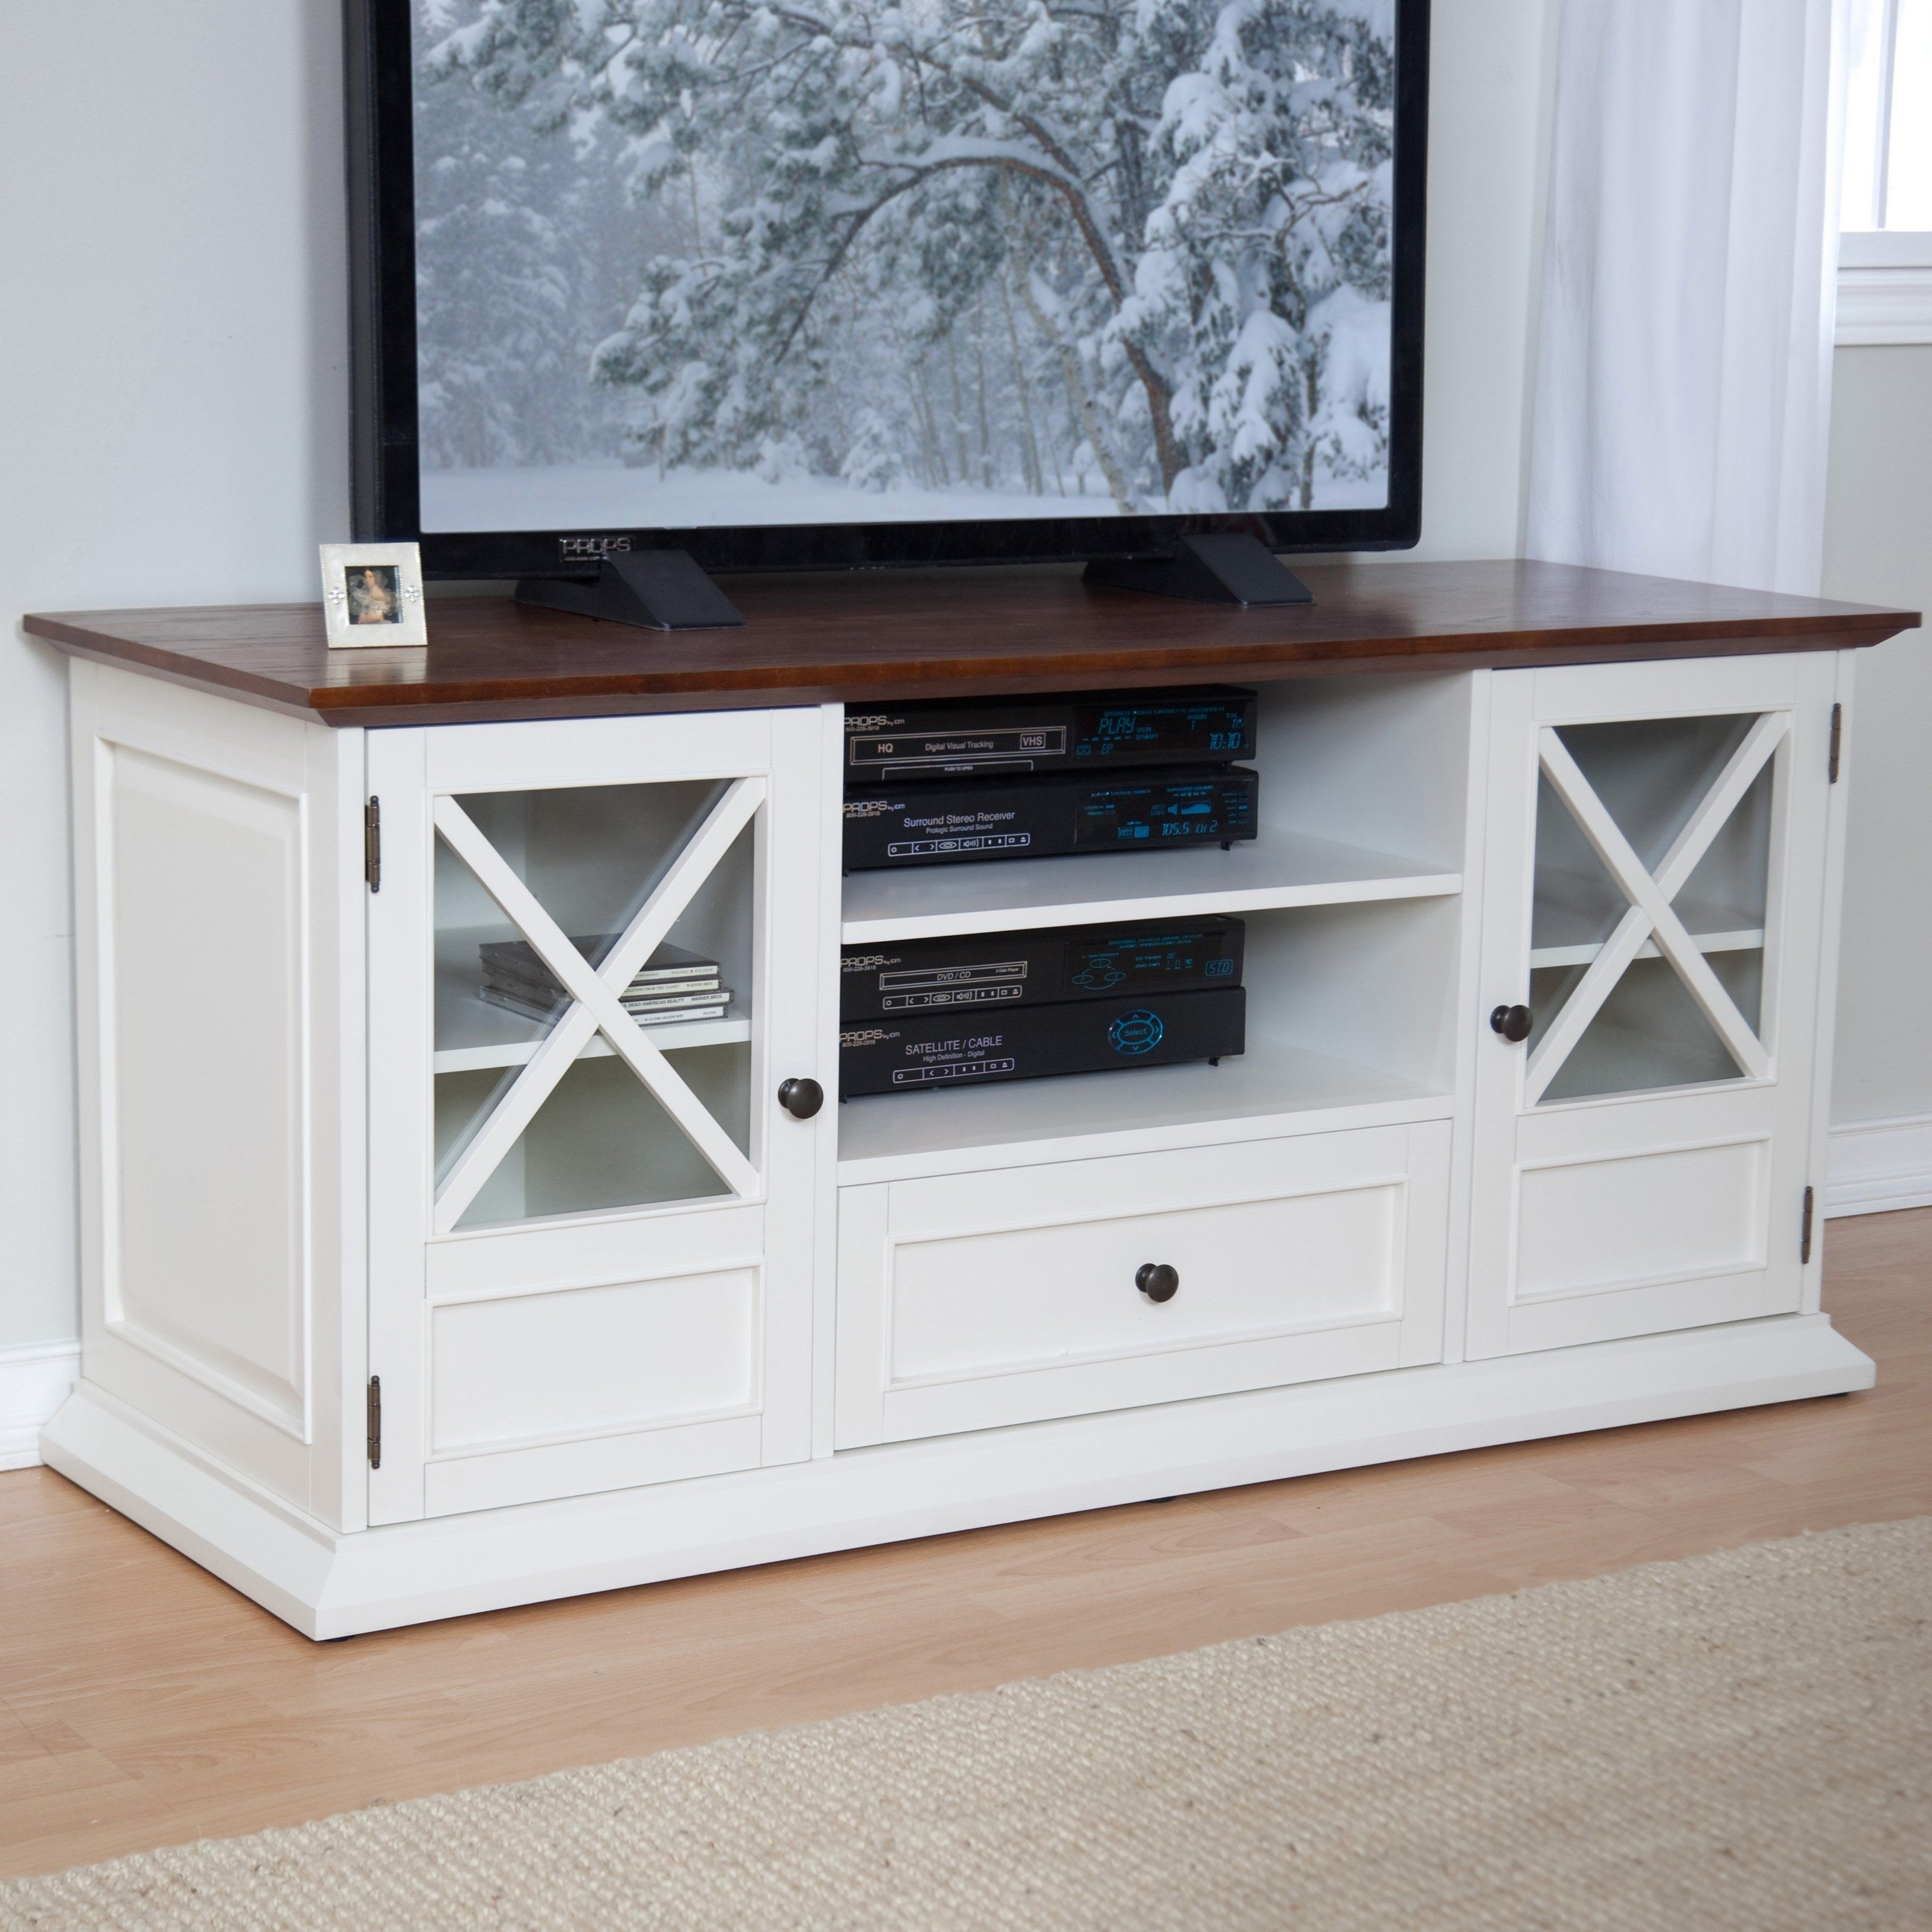 antique white corner media cabinet http betdaffaires com rh pinterest com White Corner Media Cabinet and Fireplace Antique White Cabinets with Black Countertops